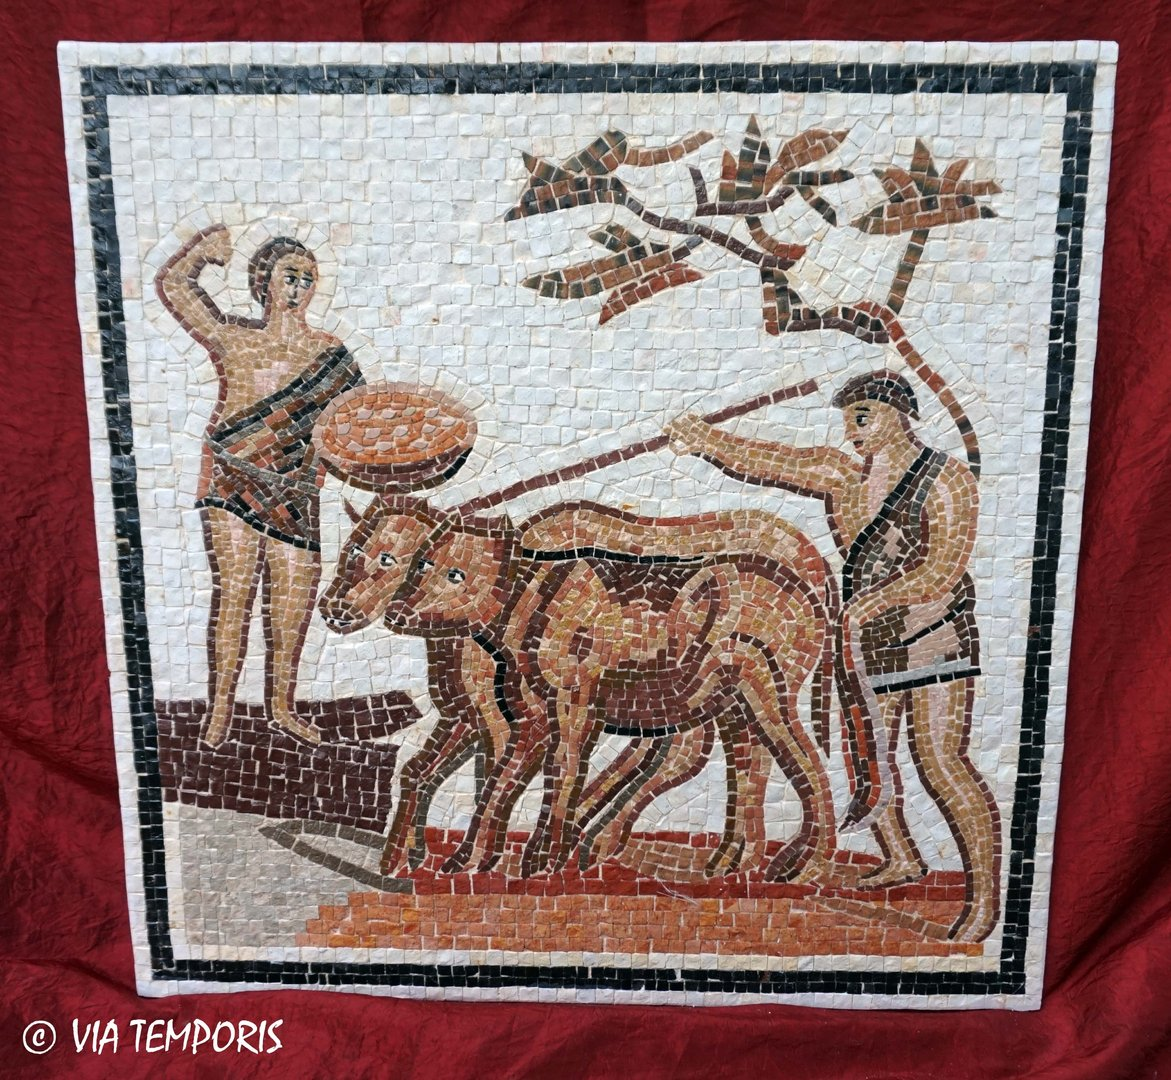 ROMAN MOSAIC - RUSTIC CALENDAR OF ST-ROMAIN-EN-GAL - AUTUMN PLOWING AND SOWING